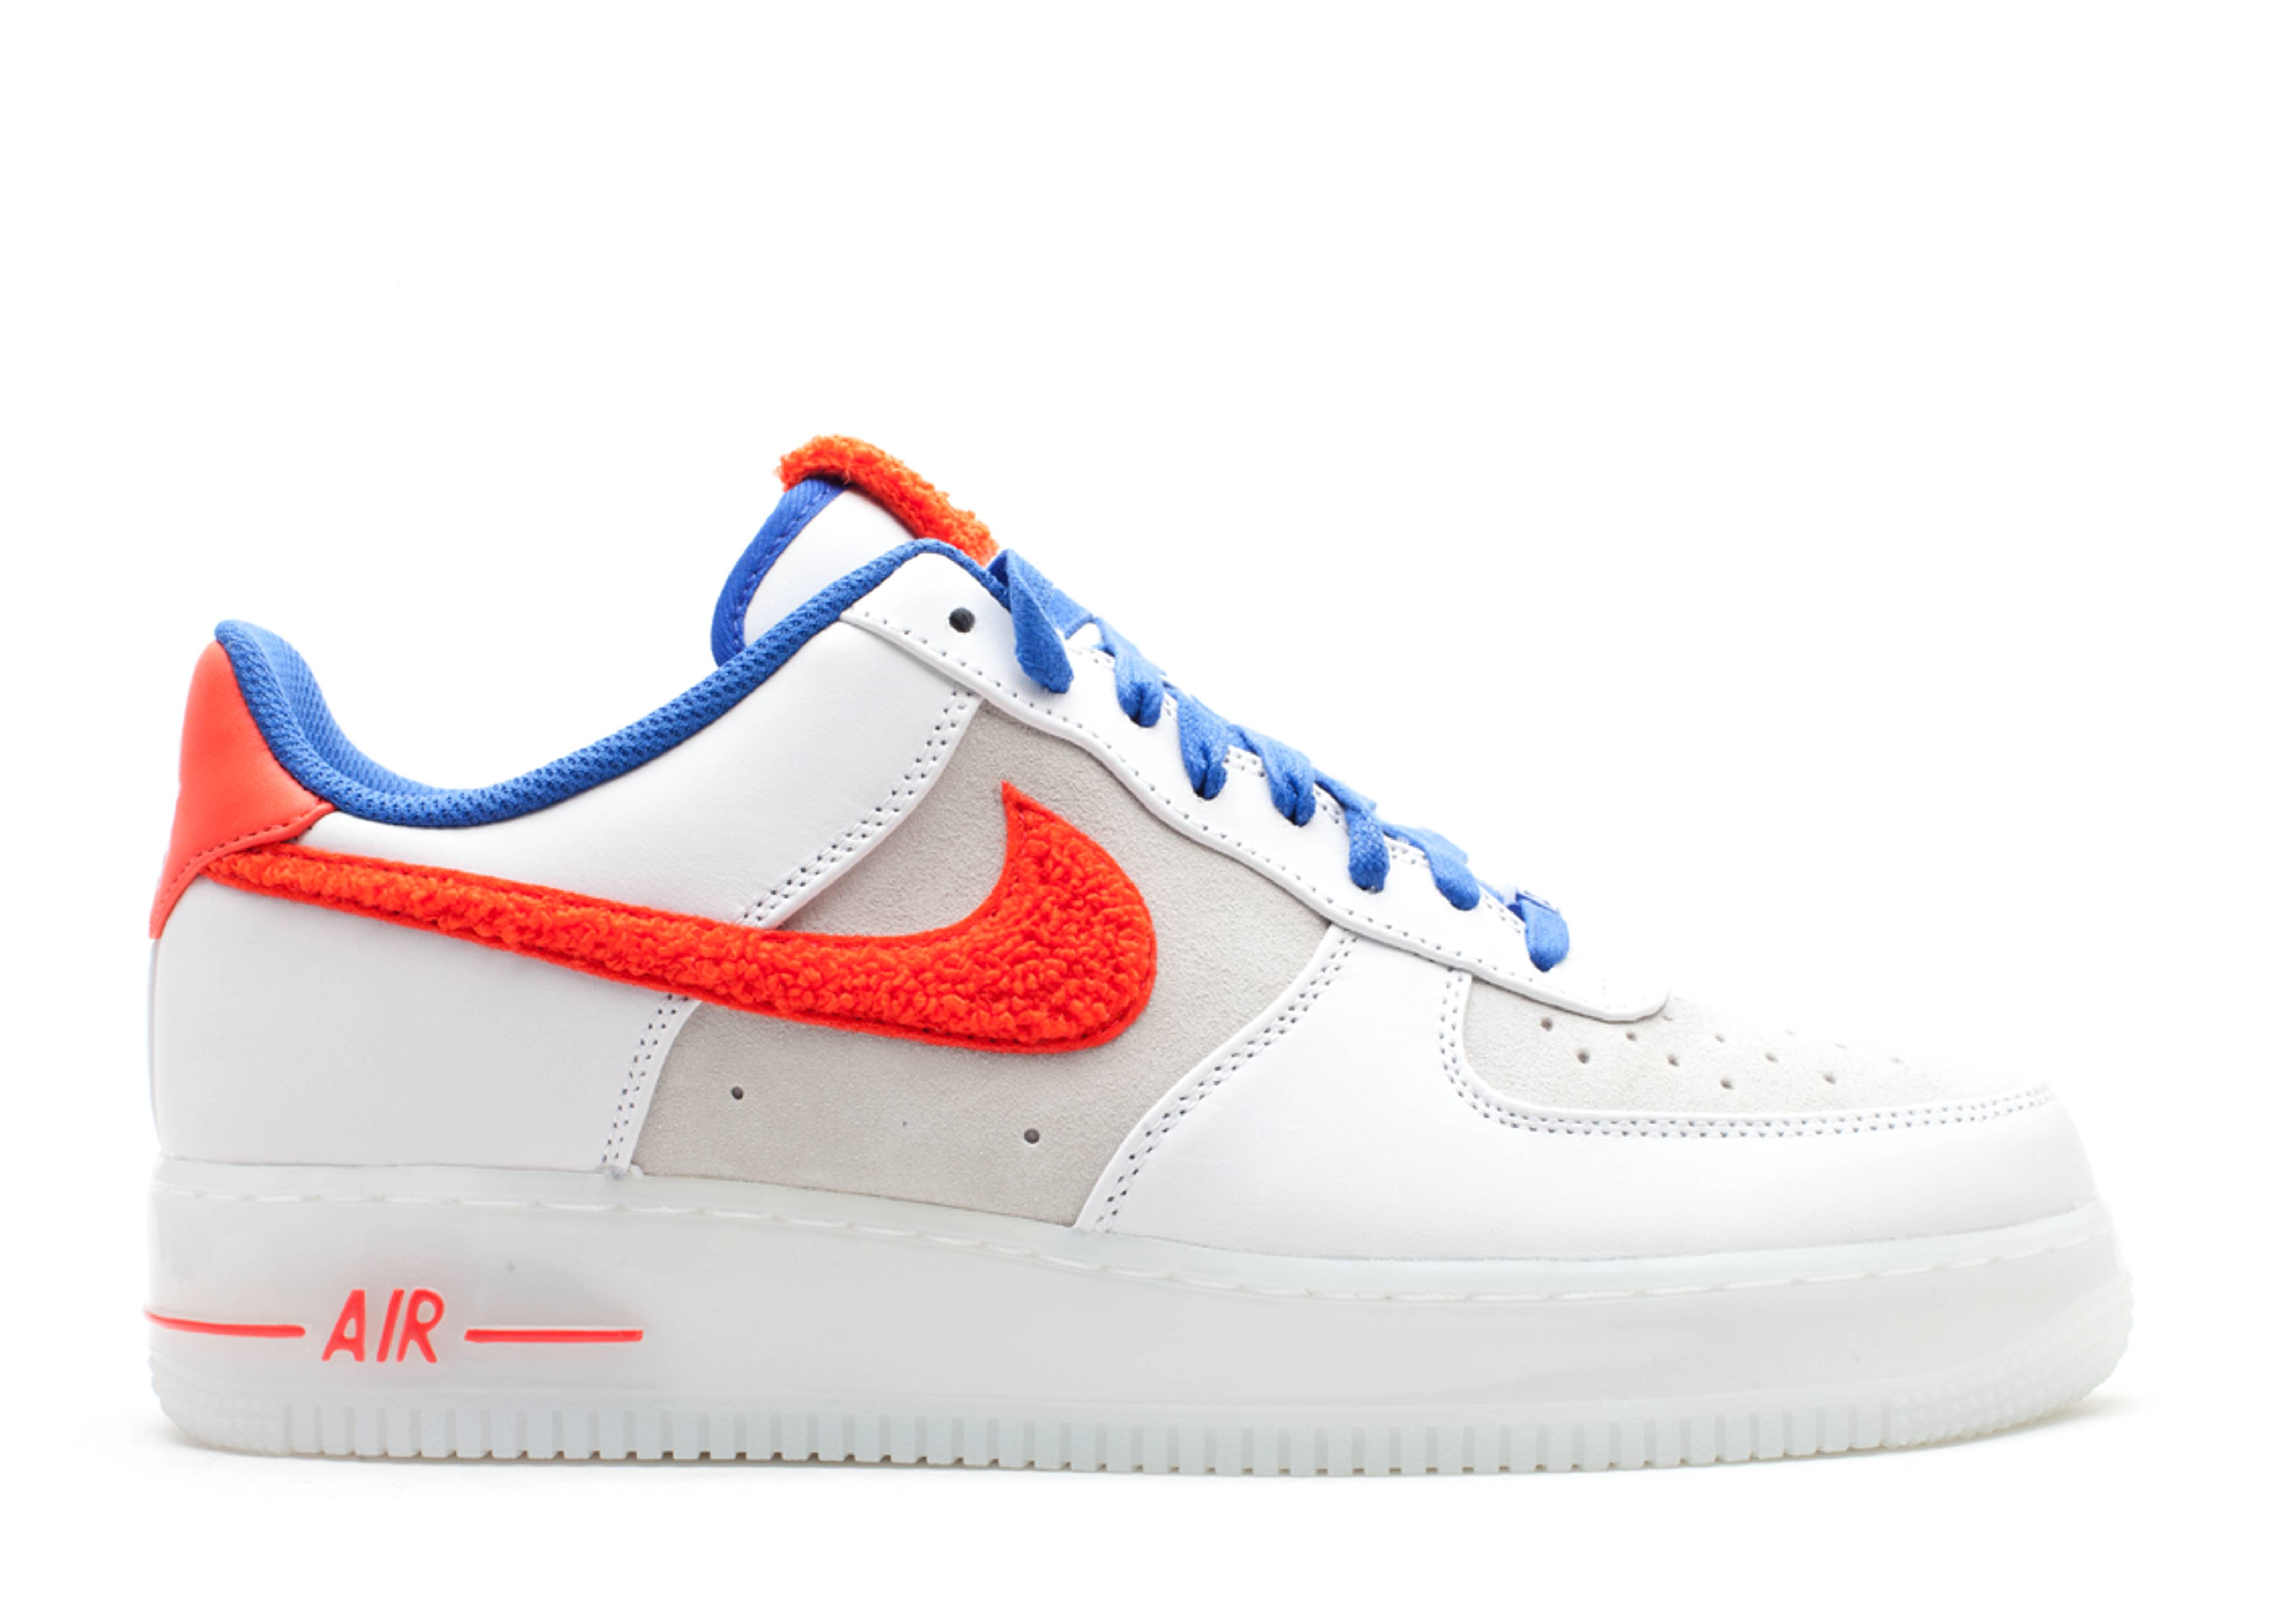 reputable site 8346c 251aa nike. air force 1 supreme low